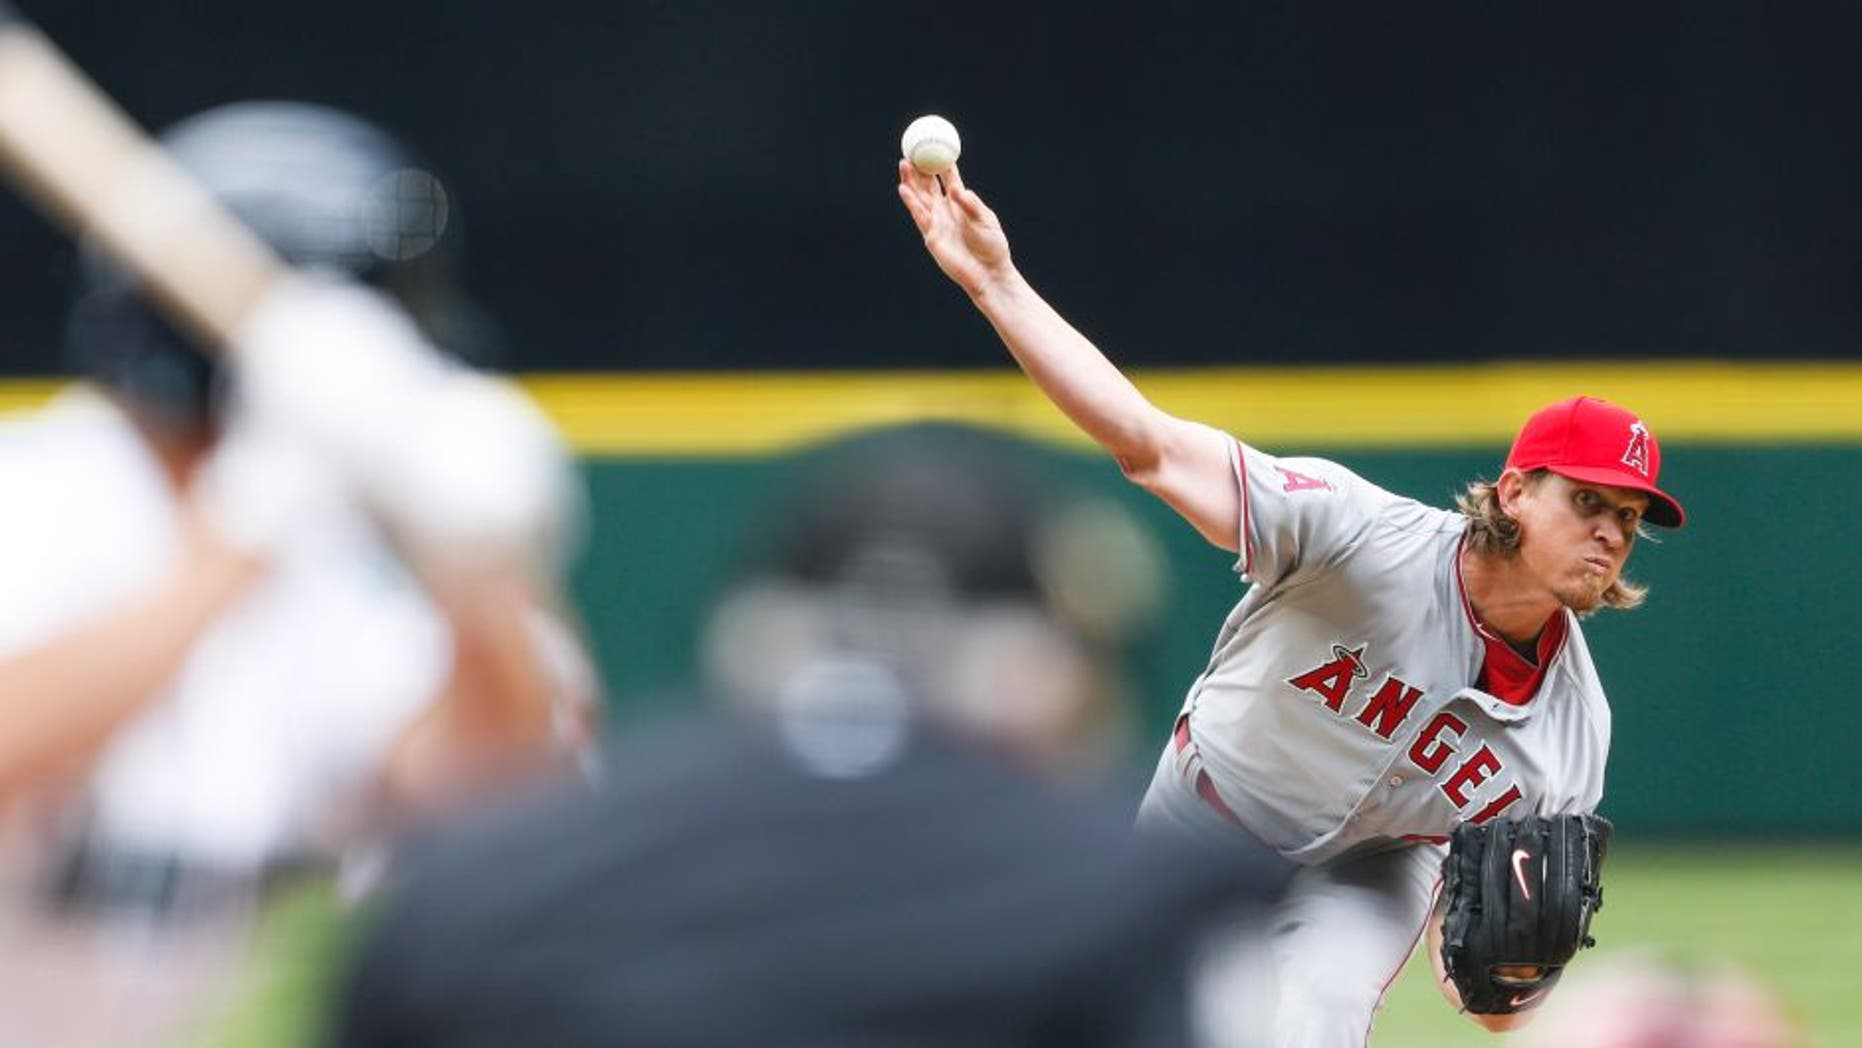 Apr 6, 2015; Seattle, WA, USA; Los Angeles Angels pitcher Jered Weaver (36) throws against the Seattle Mariners during the fourth inning at Safeco Field. Mandatory Credit: Joe Nicholson-USA TODAY Sports